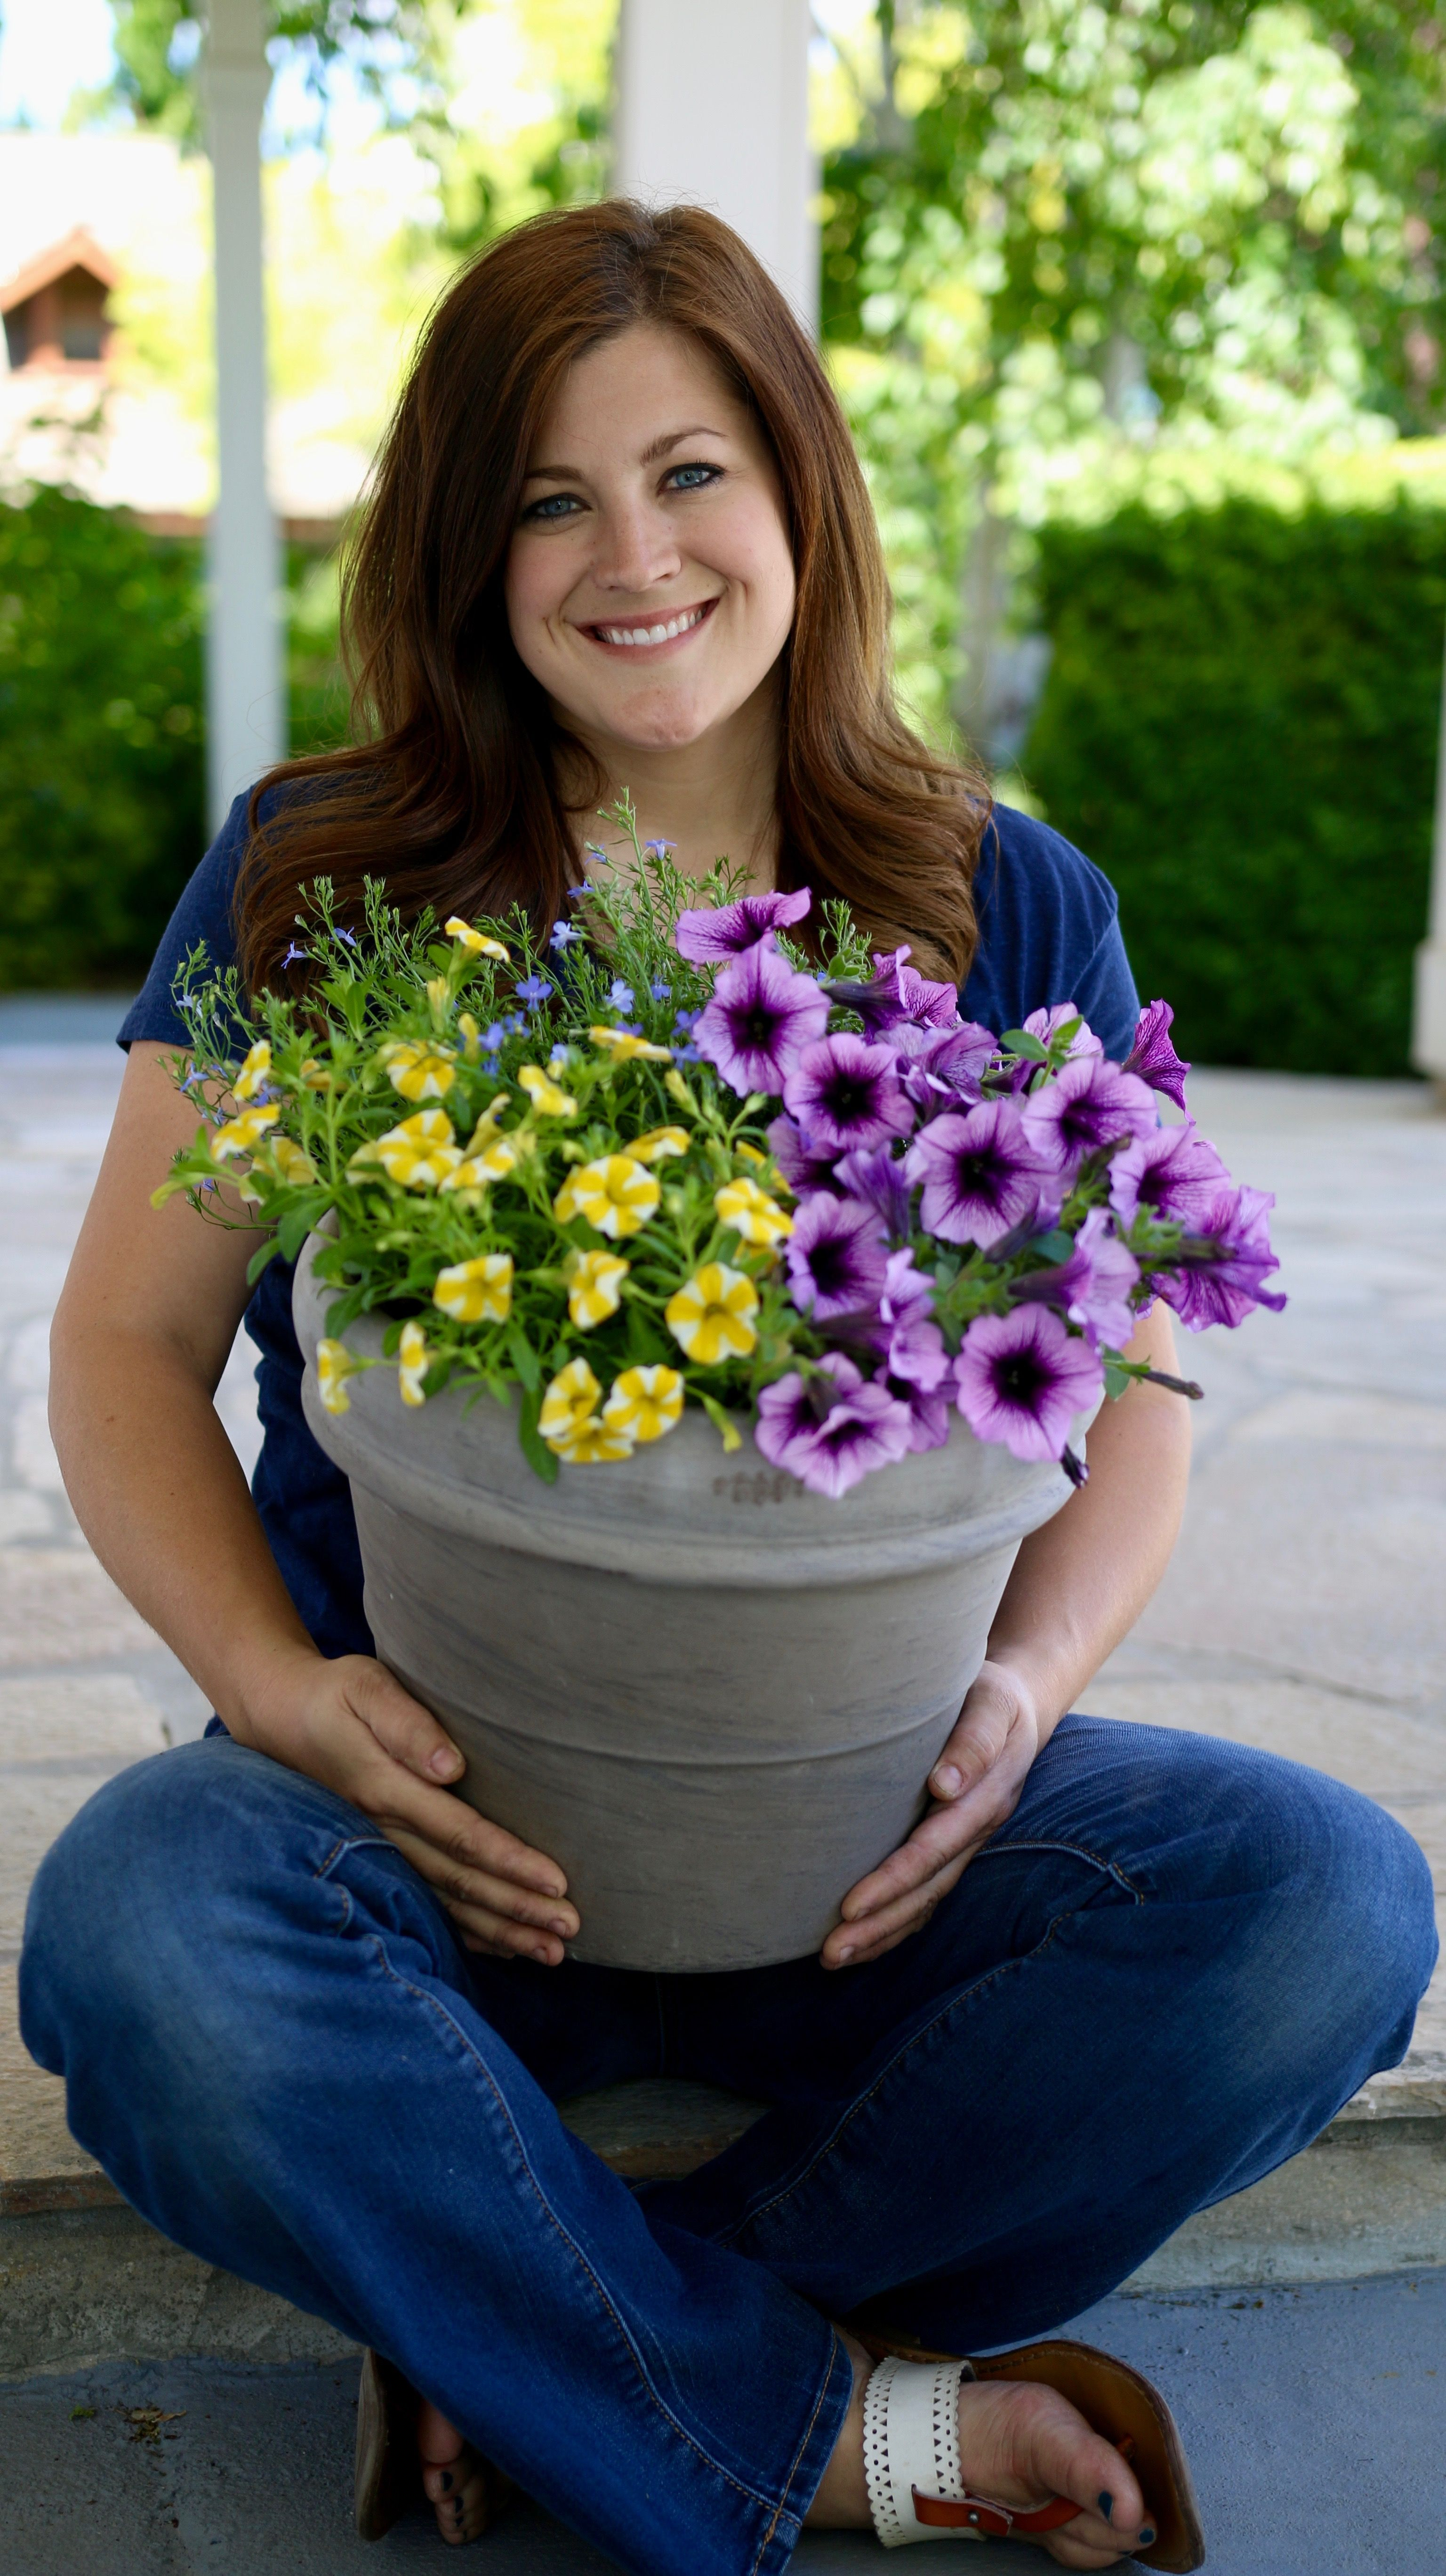 Laura from Garden Answer will show you how to pot up a